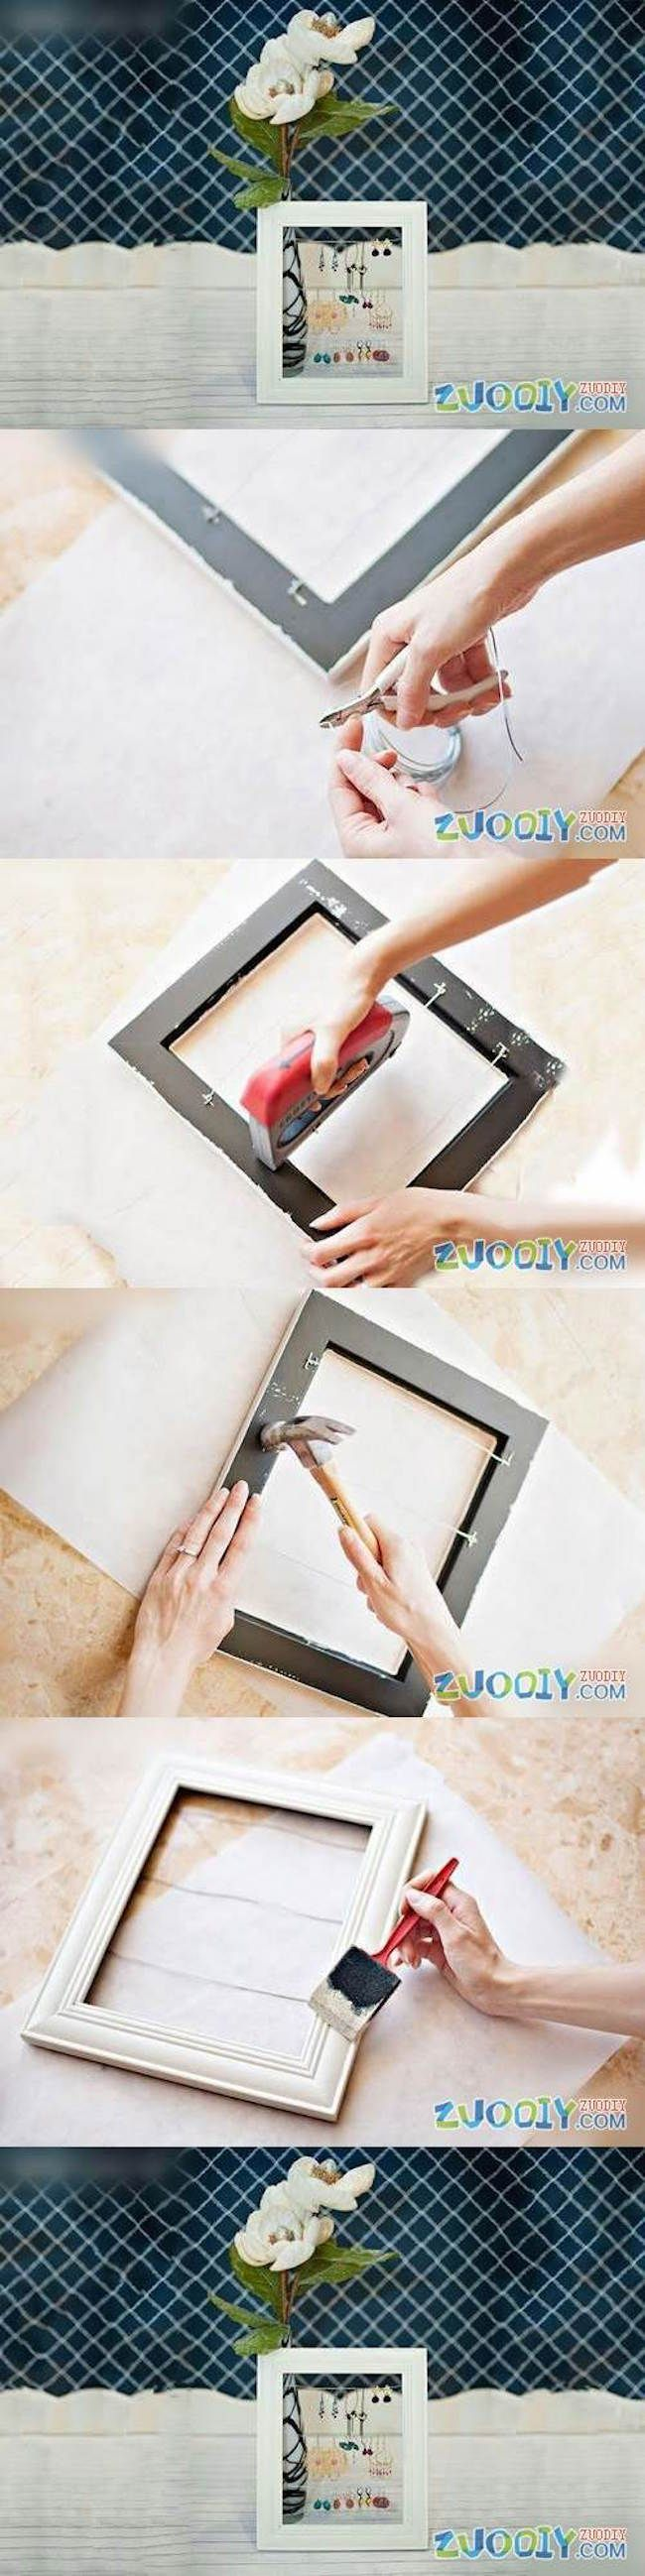 231 best ideas para marcos images on Pinterest | Picture frames ...